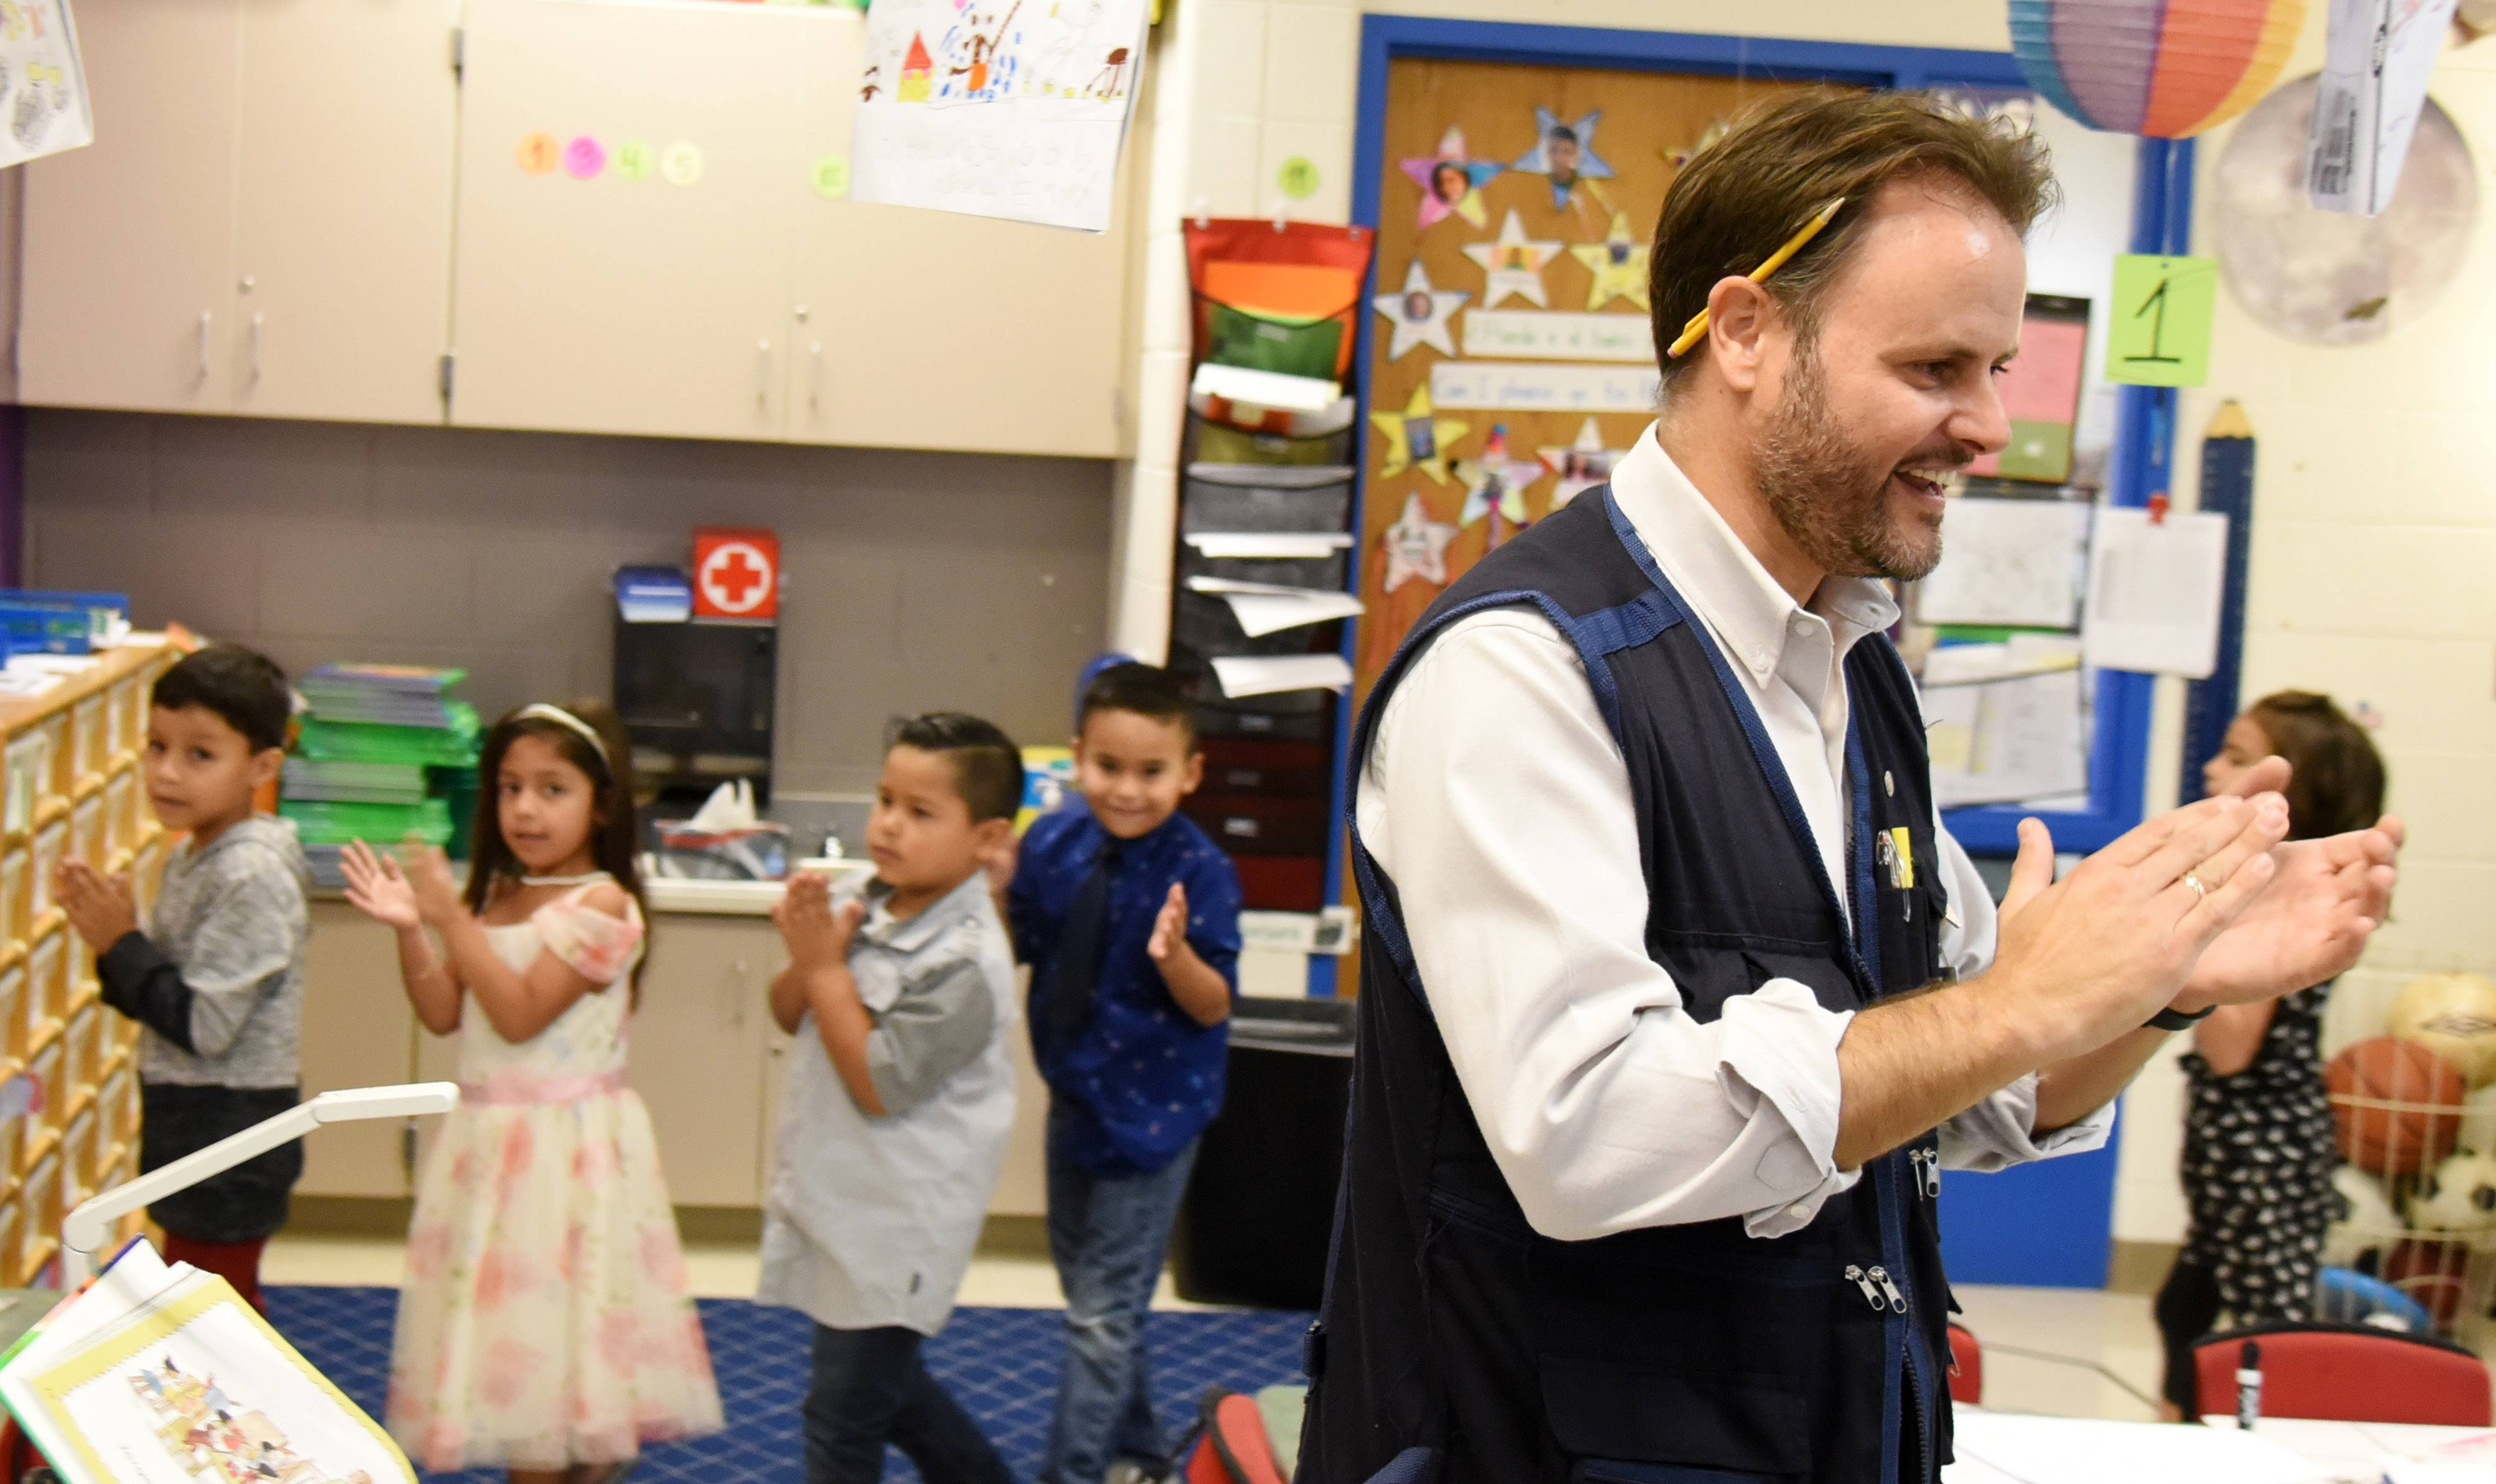 Juan Perez leads his first-grade dual language class in song at Otter Creek Elementary School in Elgin. Perez is the only male first-grade teacher at the school and a pioneer of Elgin Area School District U-46's Dual Language Program.